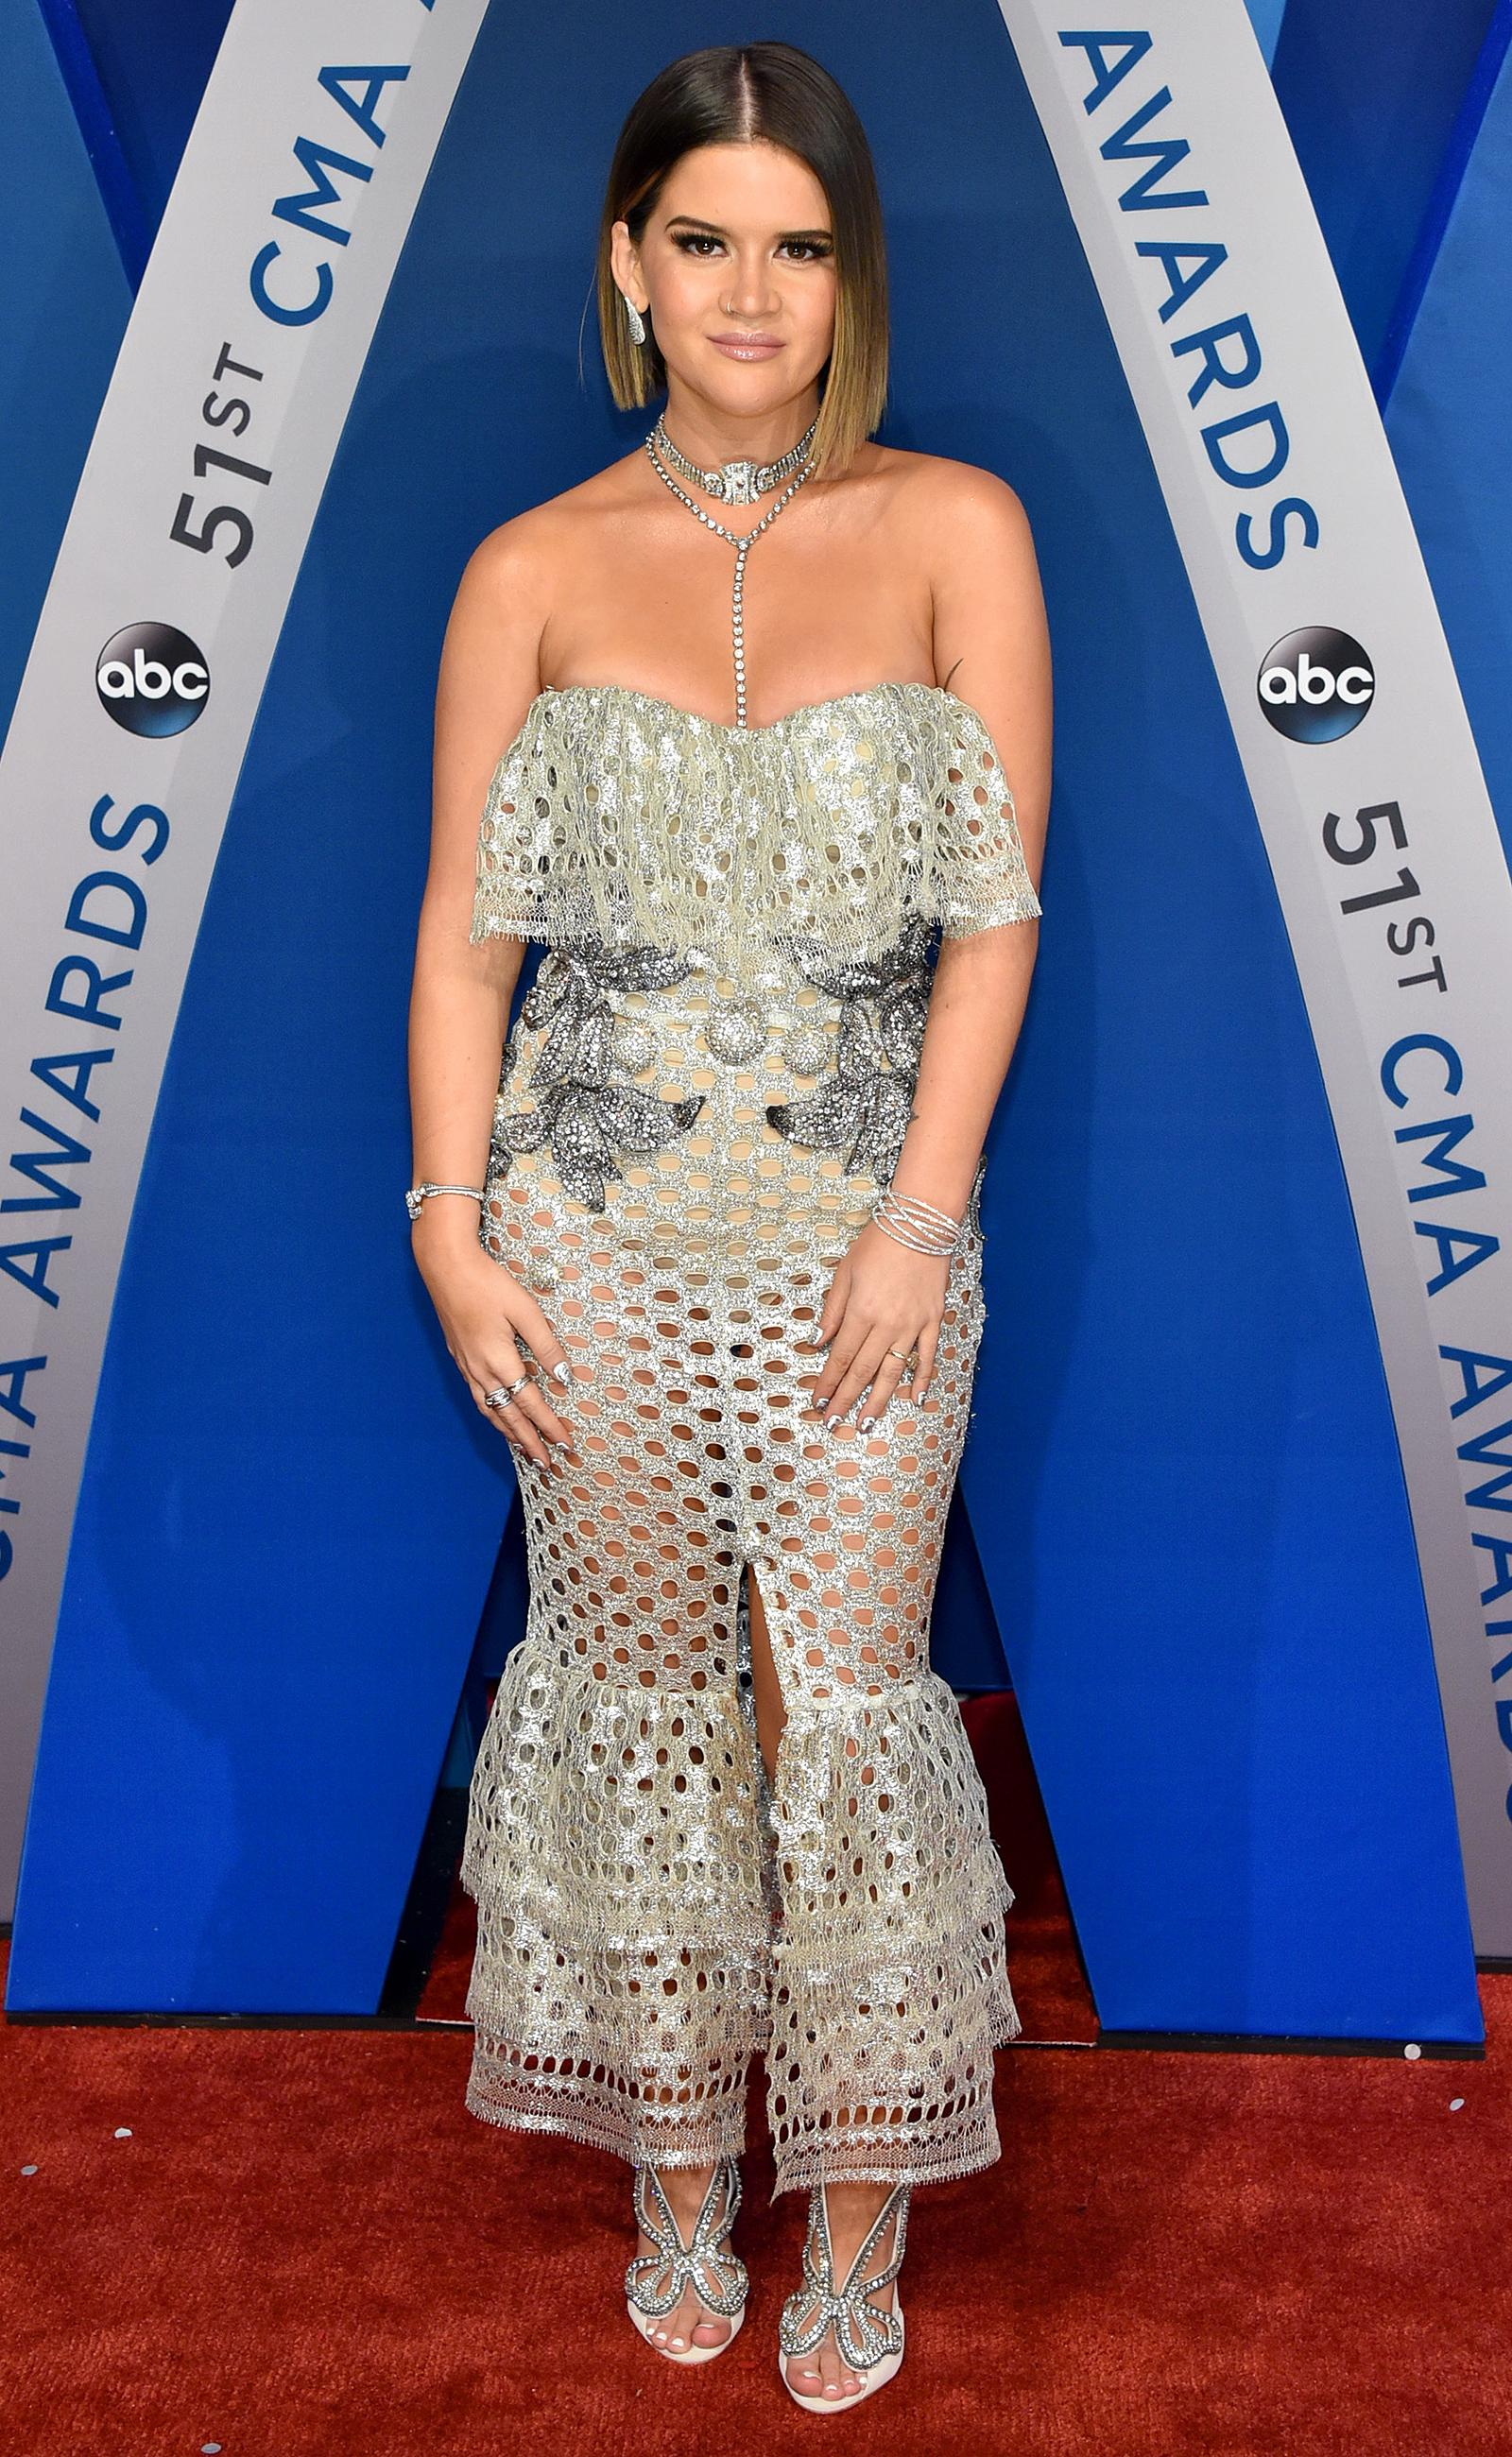 The Wildest Outfits Ever Seen at the ACM Awards